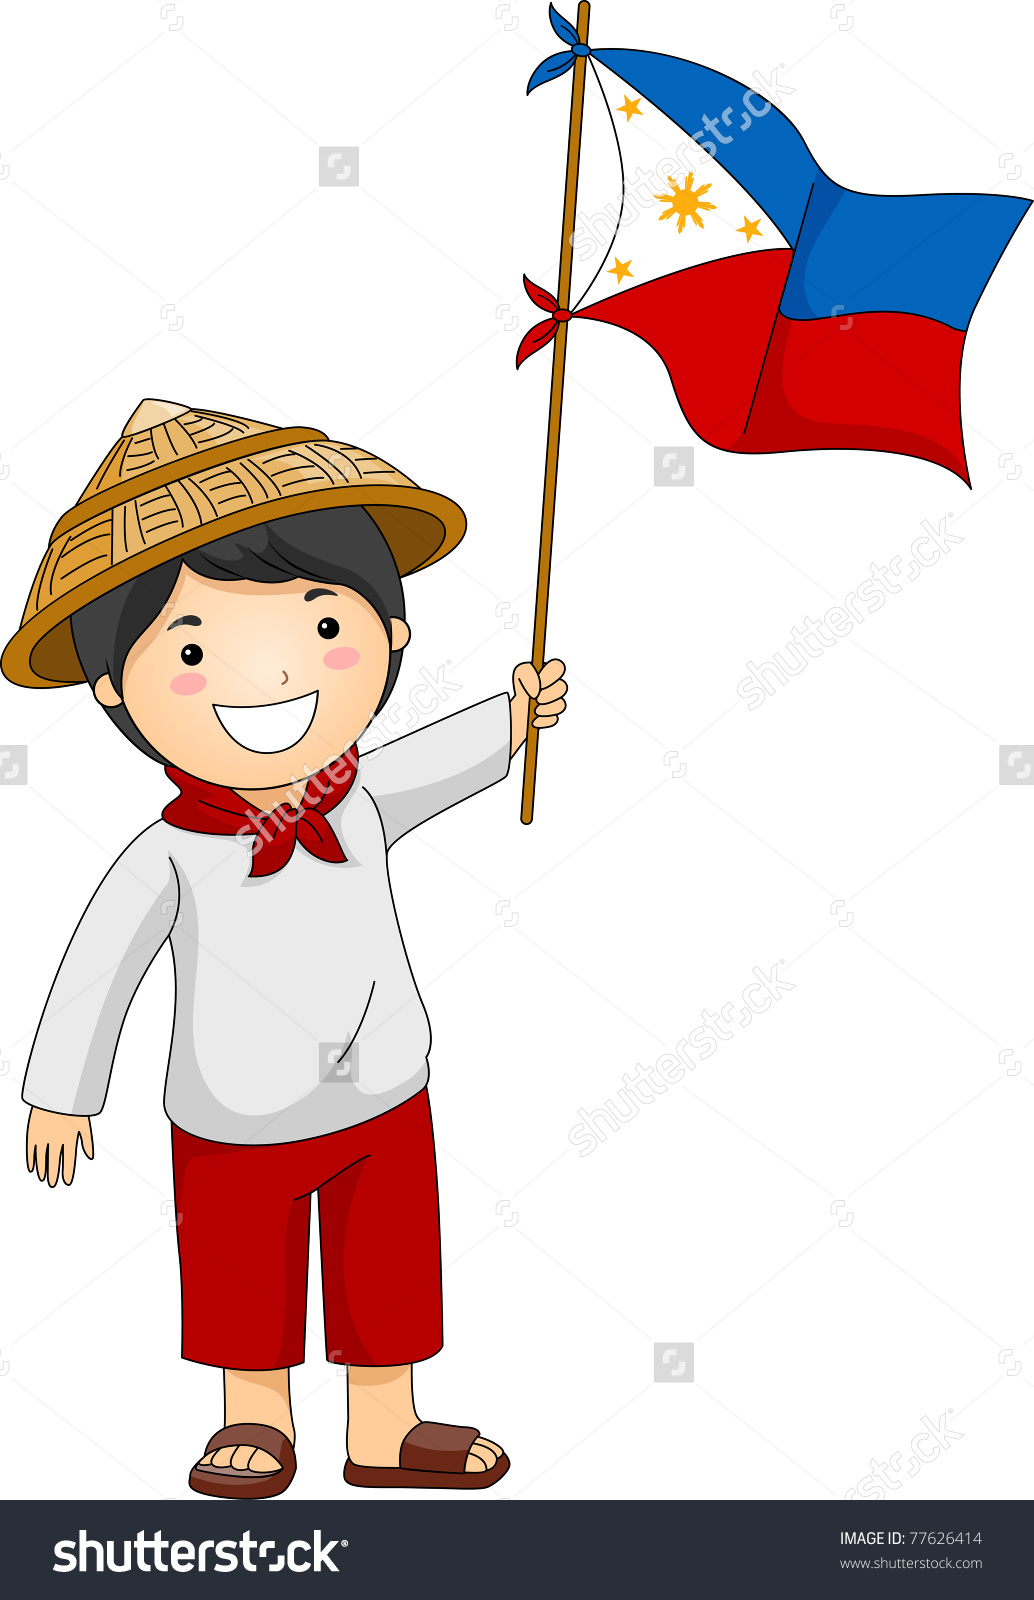 Illustration Filipino Kid Holding Philippine Flag Stock Vector.